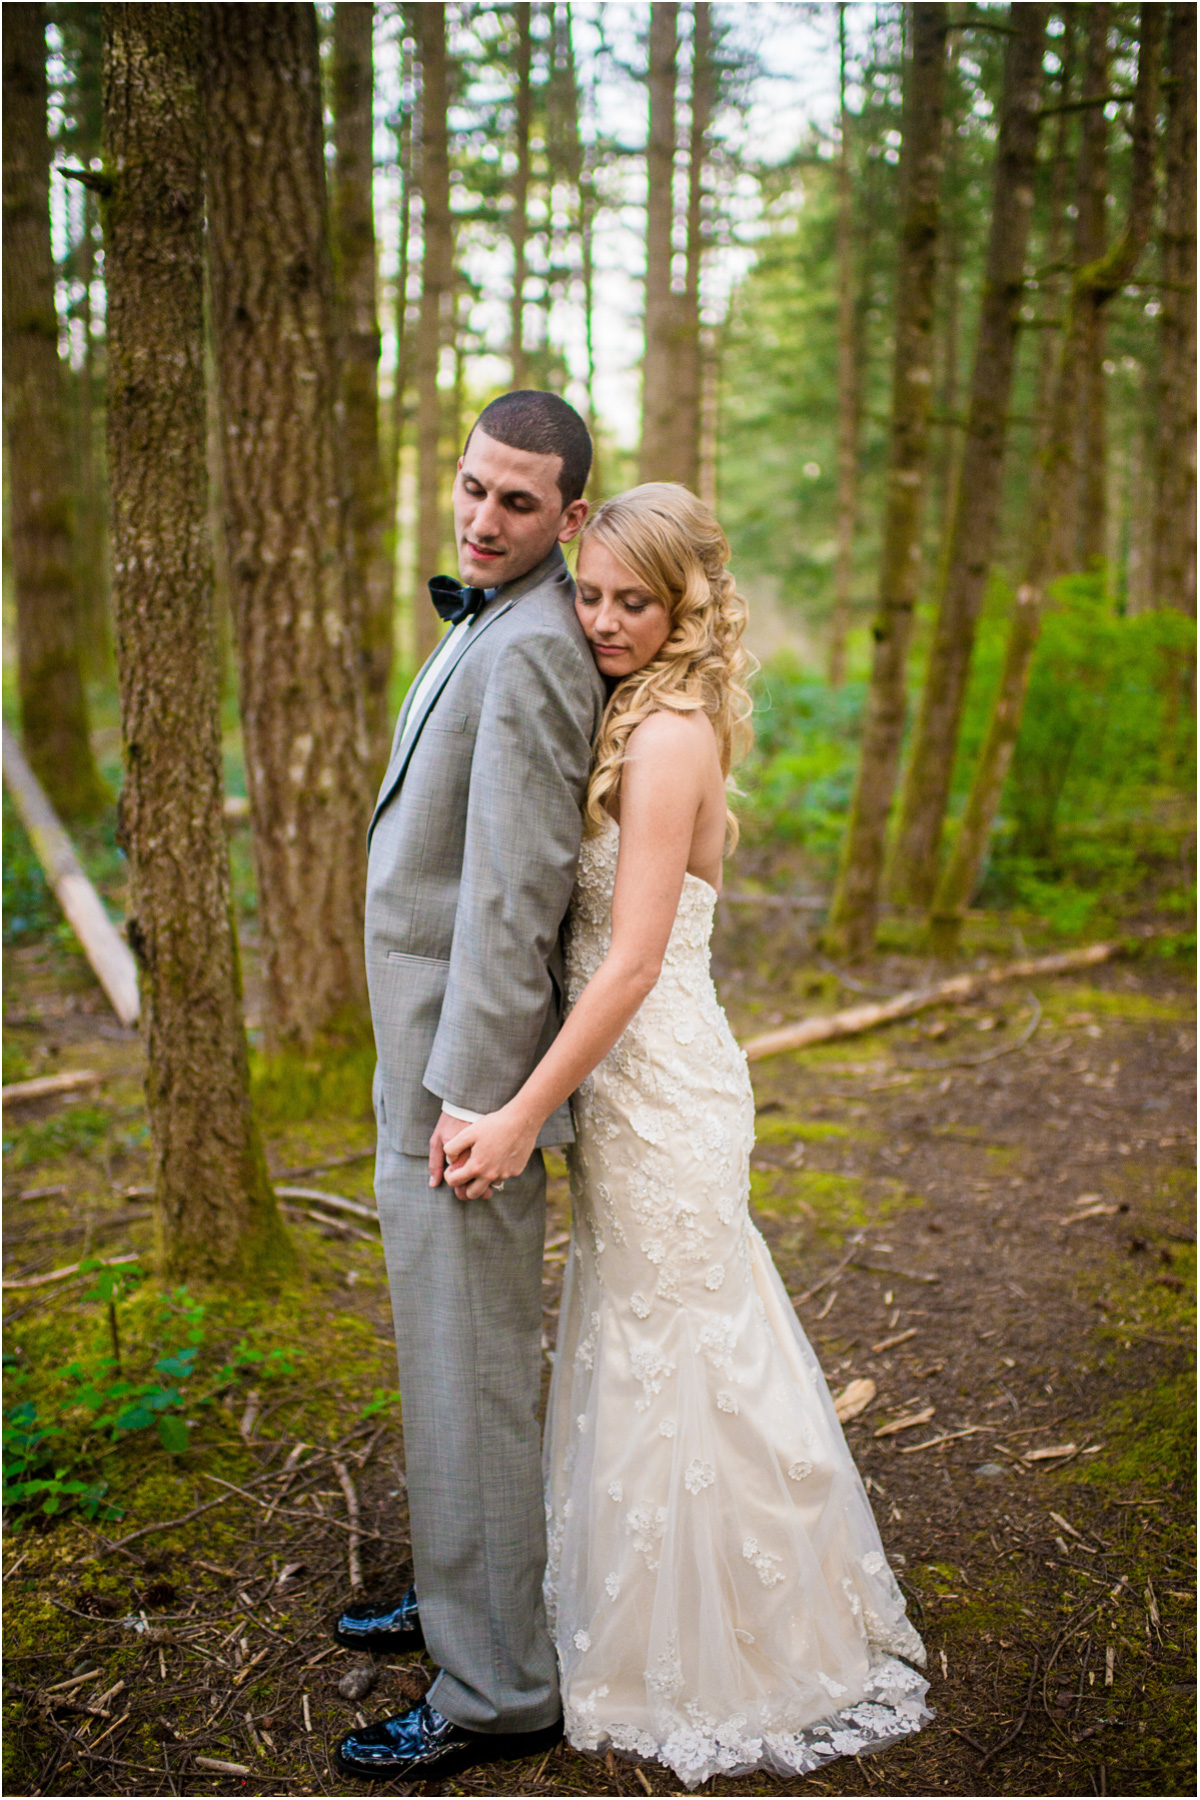 Intimate Wedding Bride and Groom Portraits in Woods